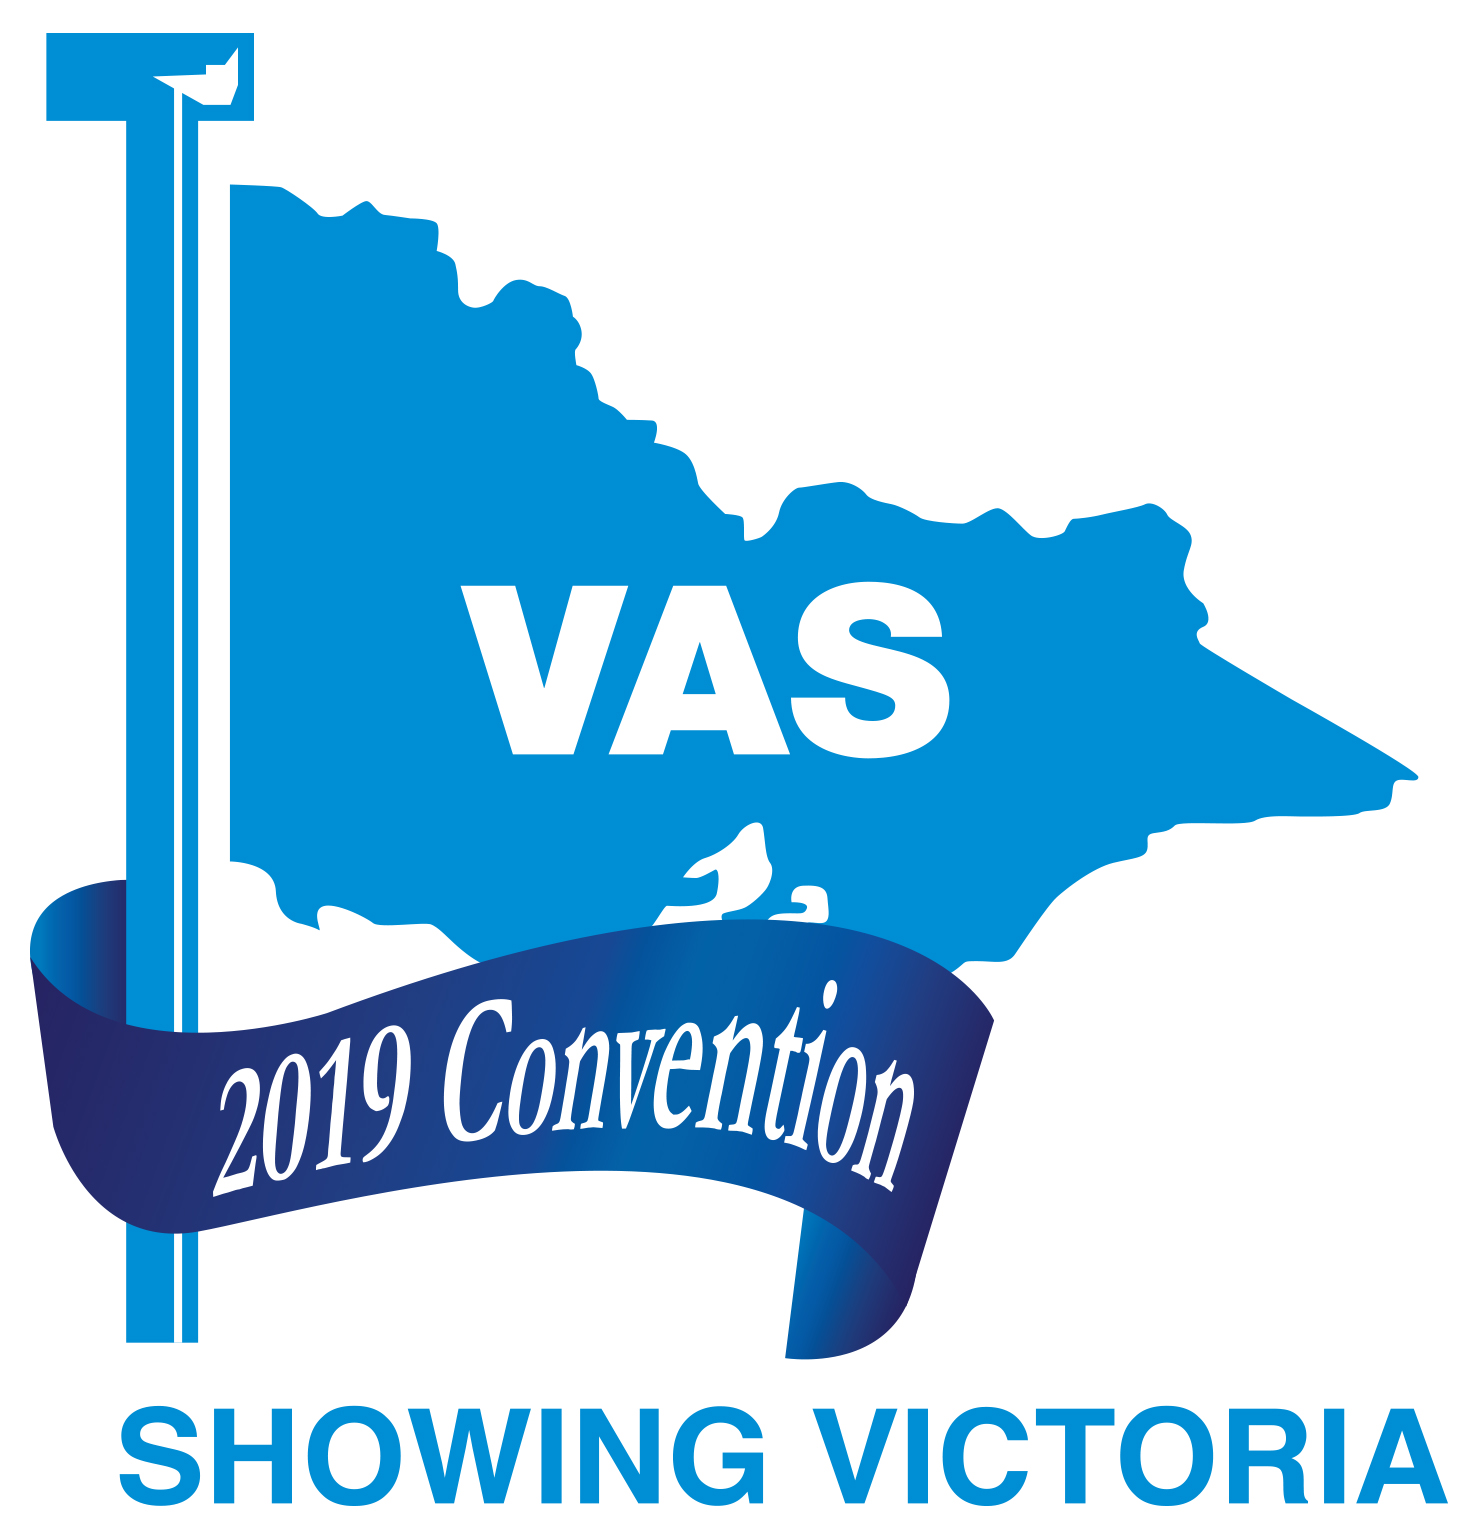 VAS LOGO 2019 Convention.jpg